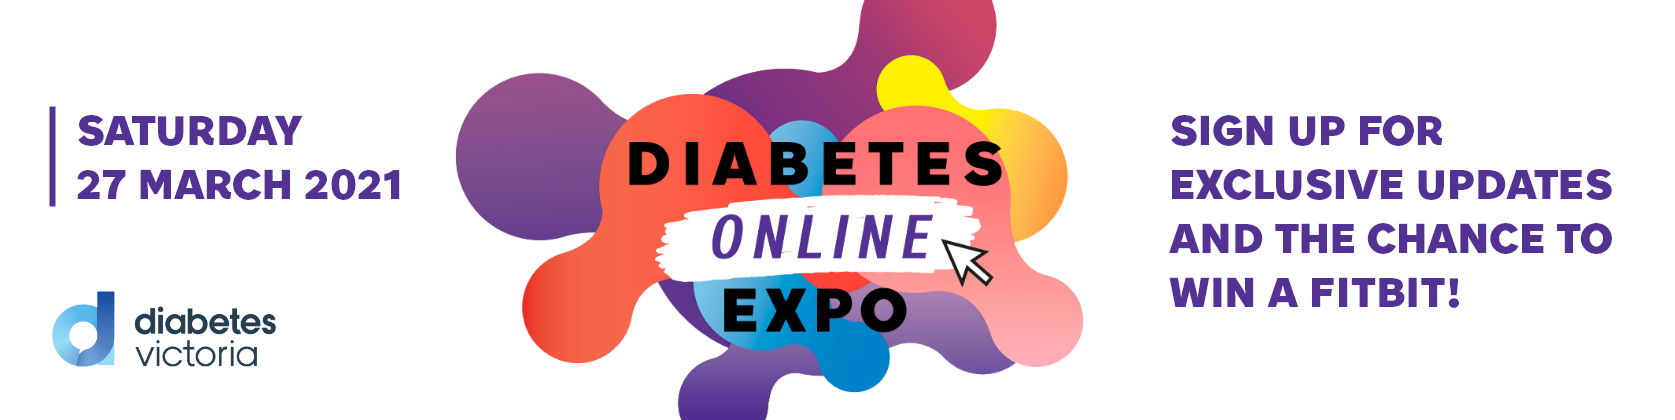 Diabetes Online Expo 2021 - Sign up